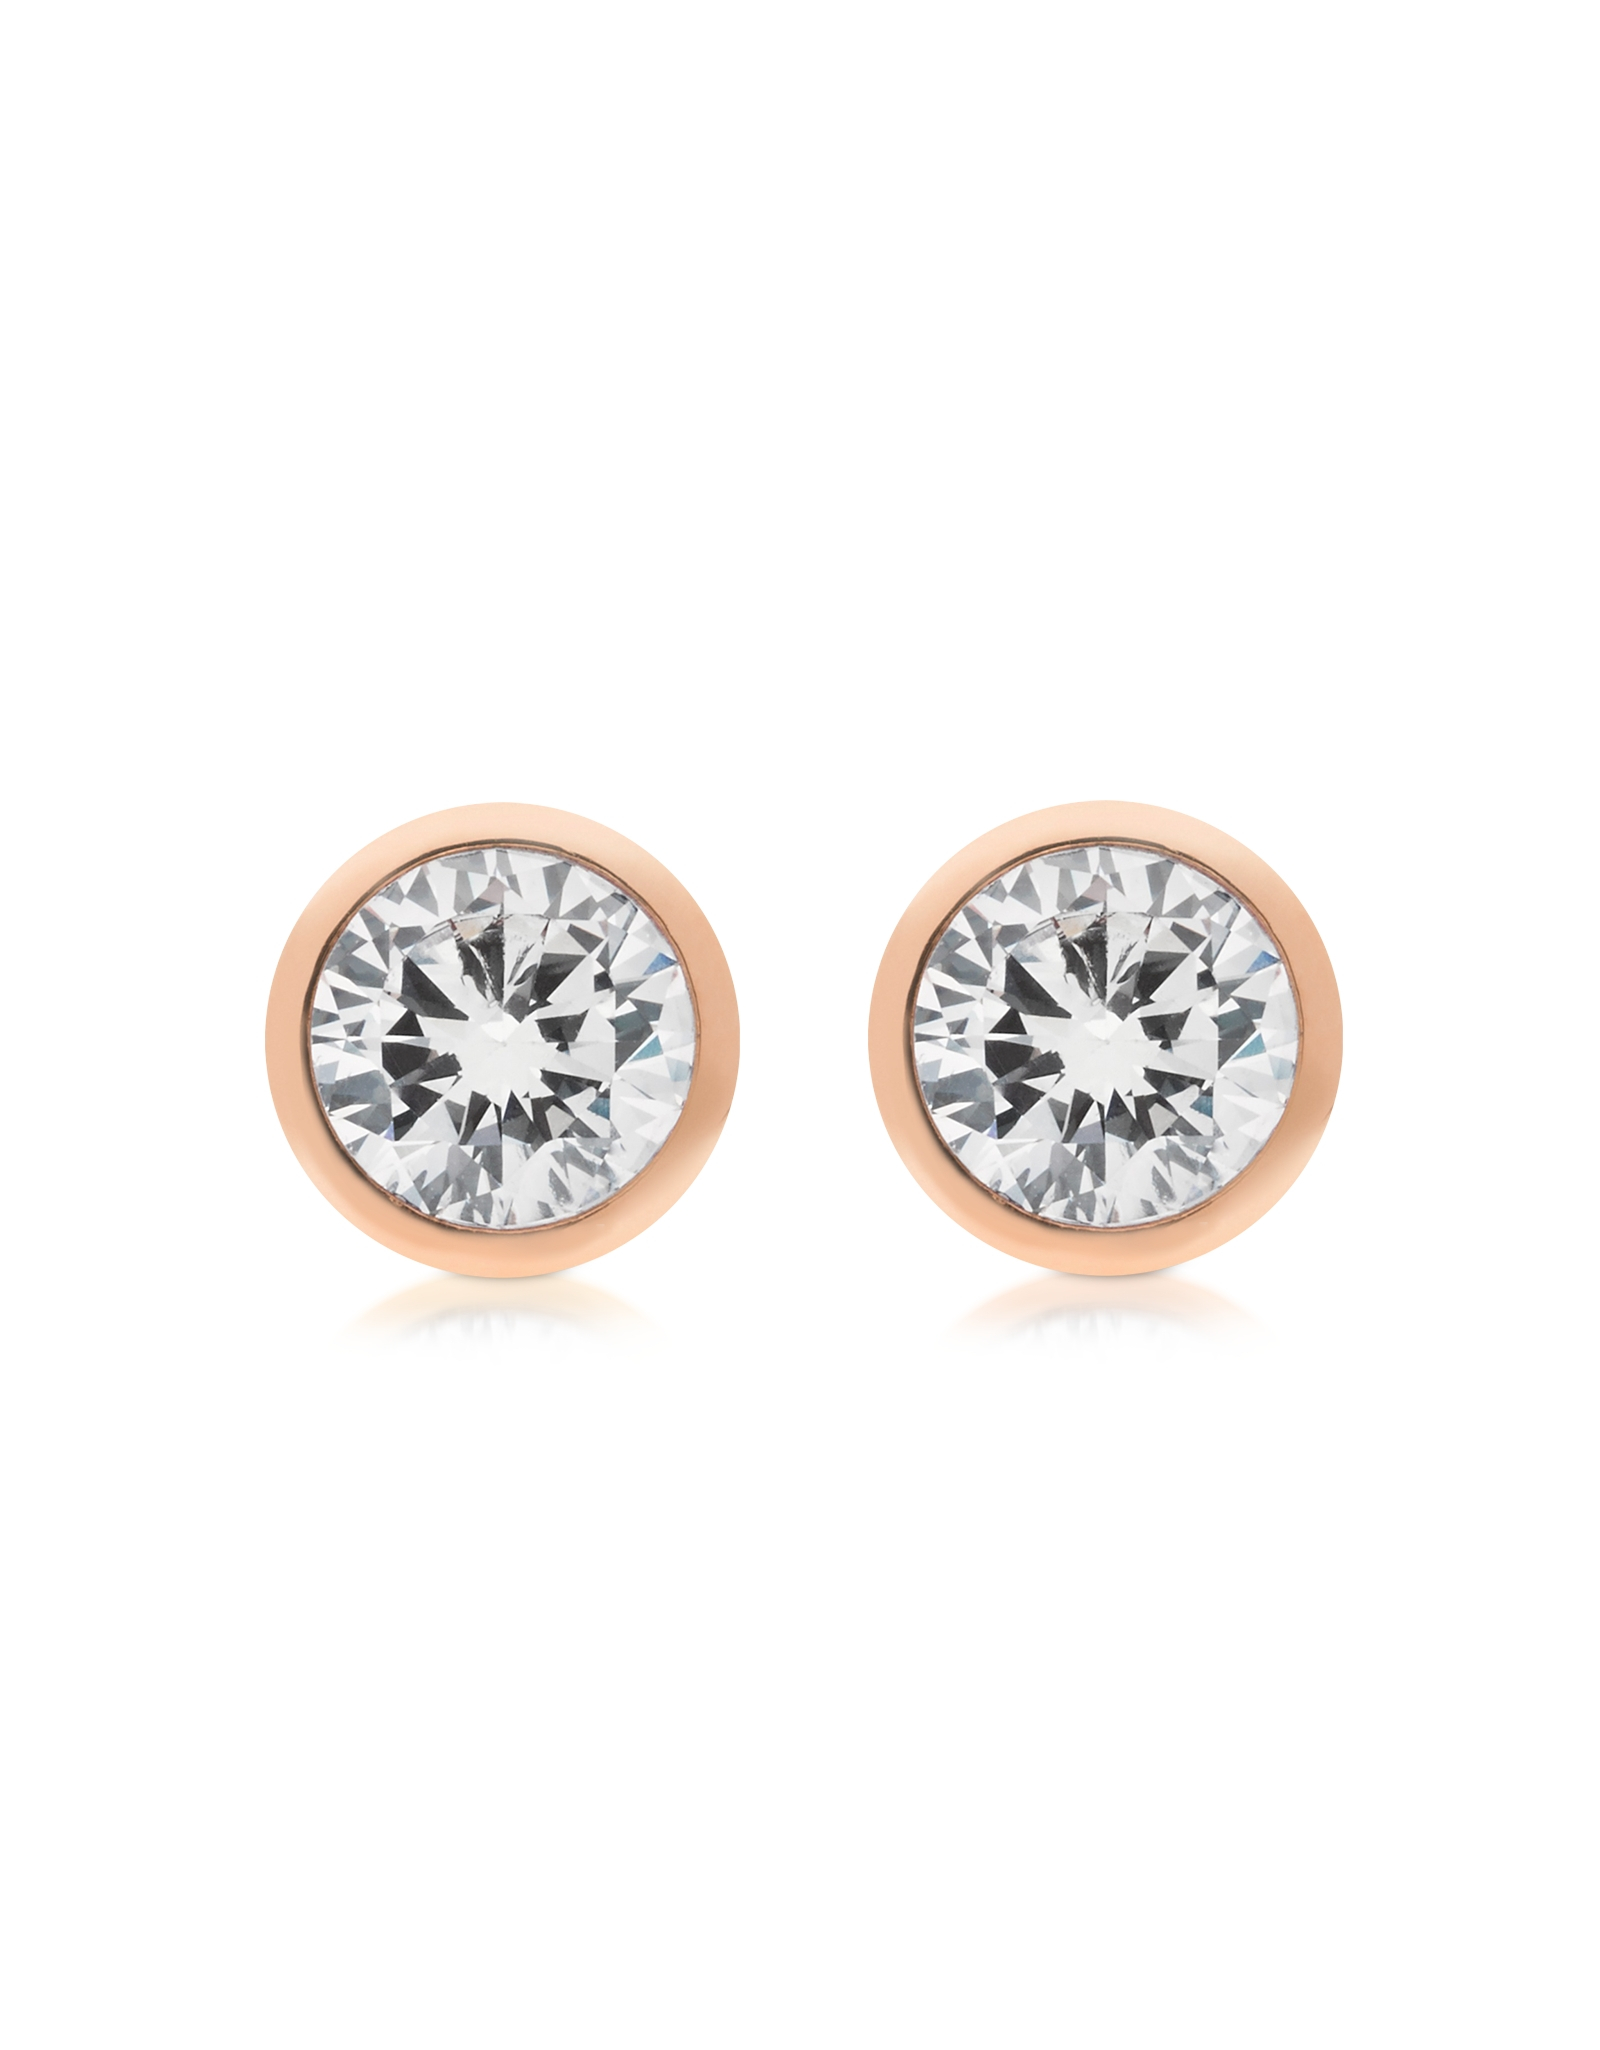 c249ef448120a Michael Kors Brilliance Rose Gold Earrings - The Best Produck Of Earring